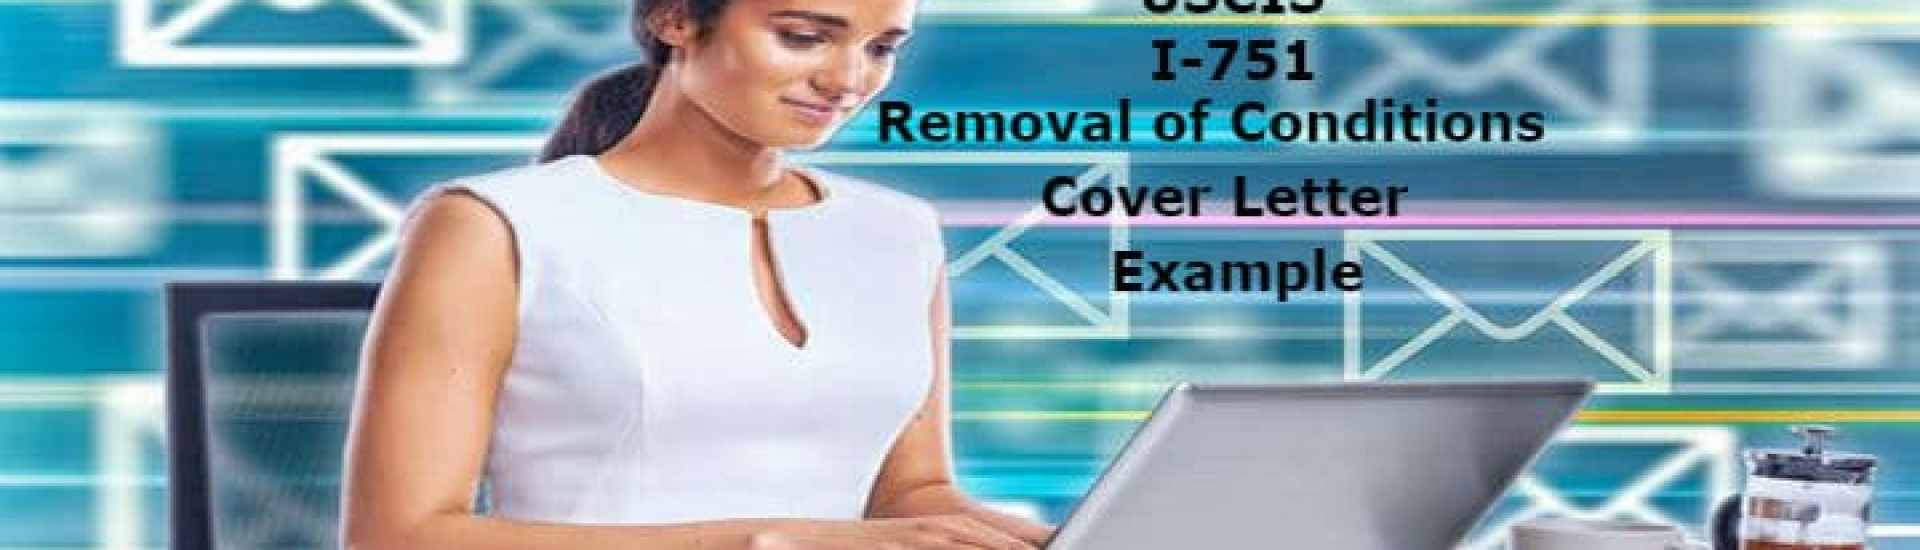 USCIS I 751 Removal of Conditions Cover Letter Example - LoveVisaLife